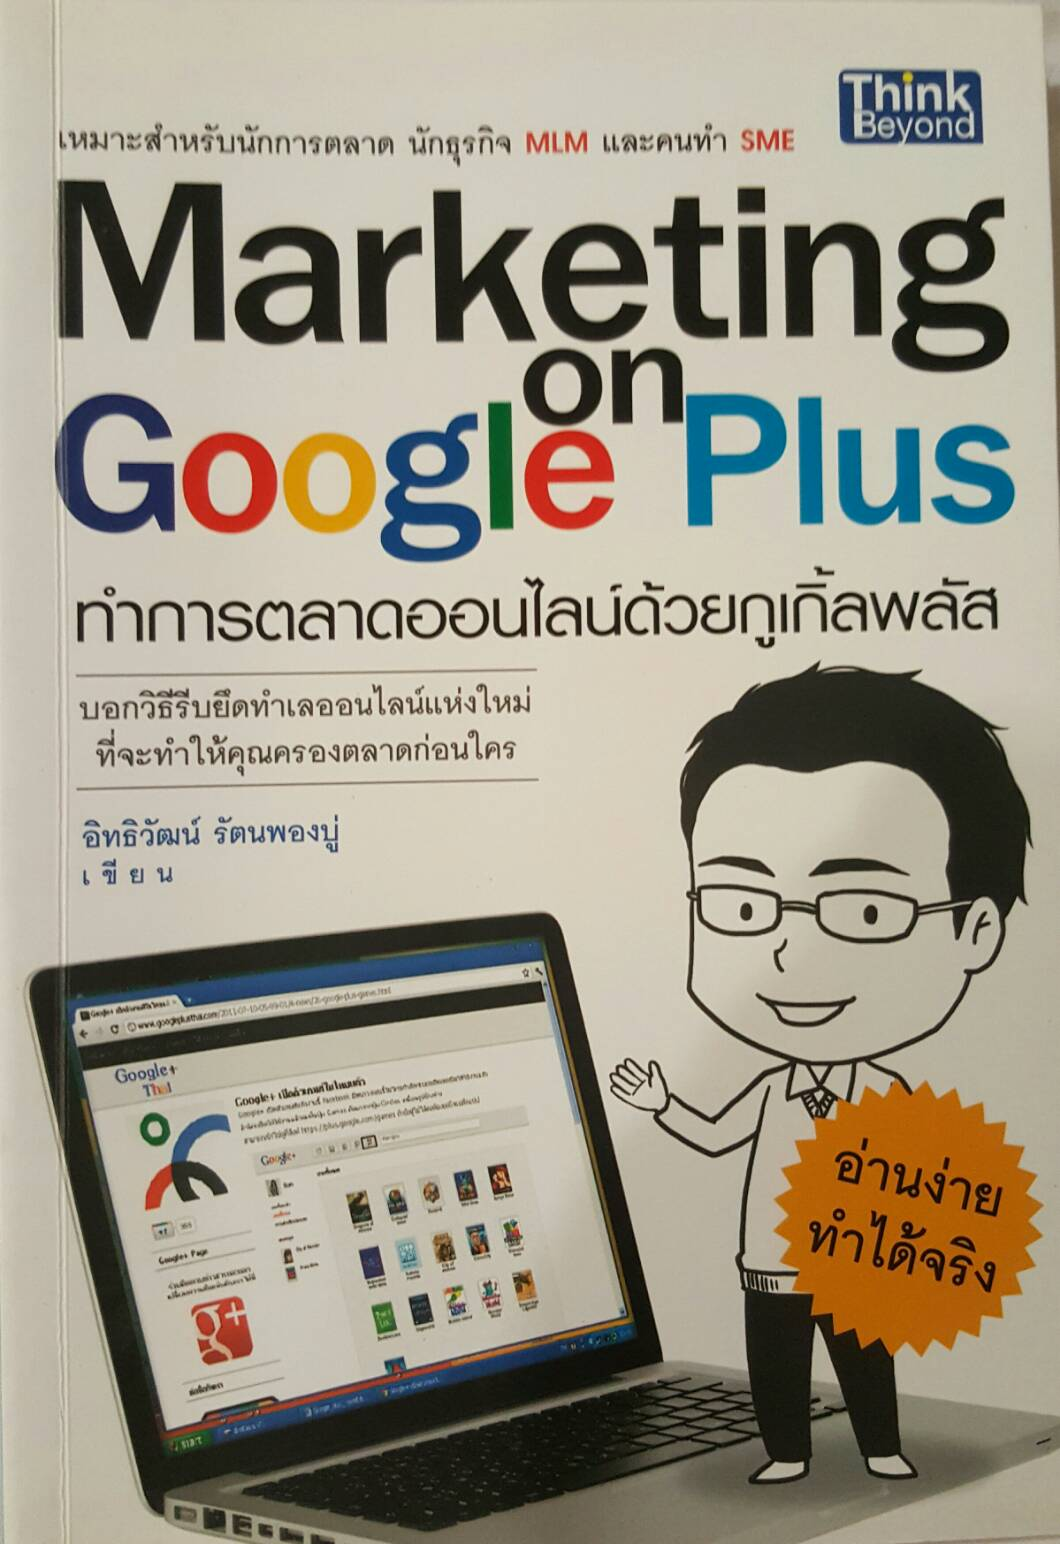 Marketing on Google Plus